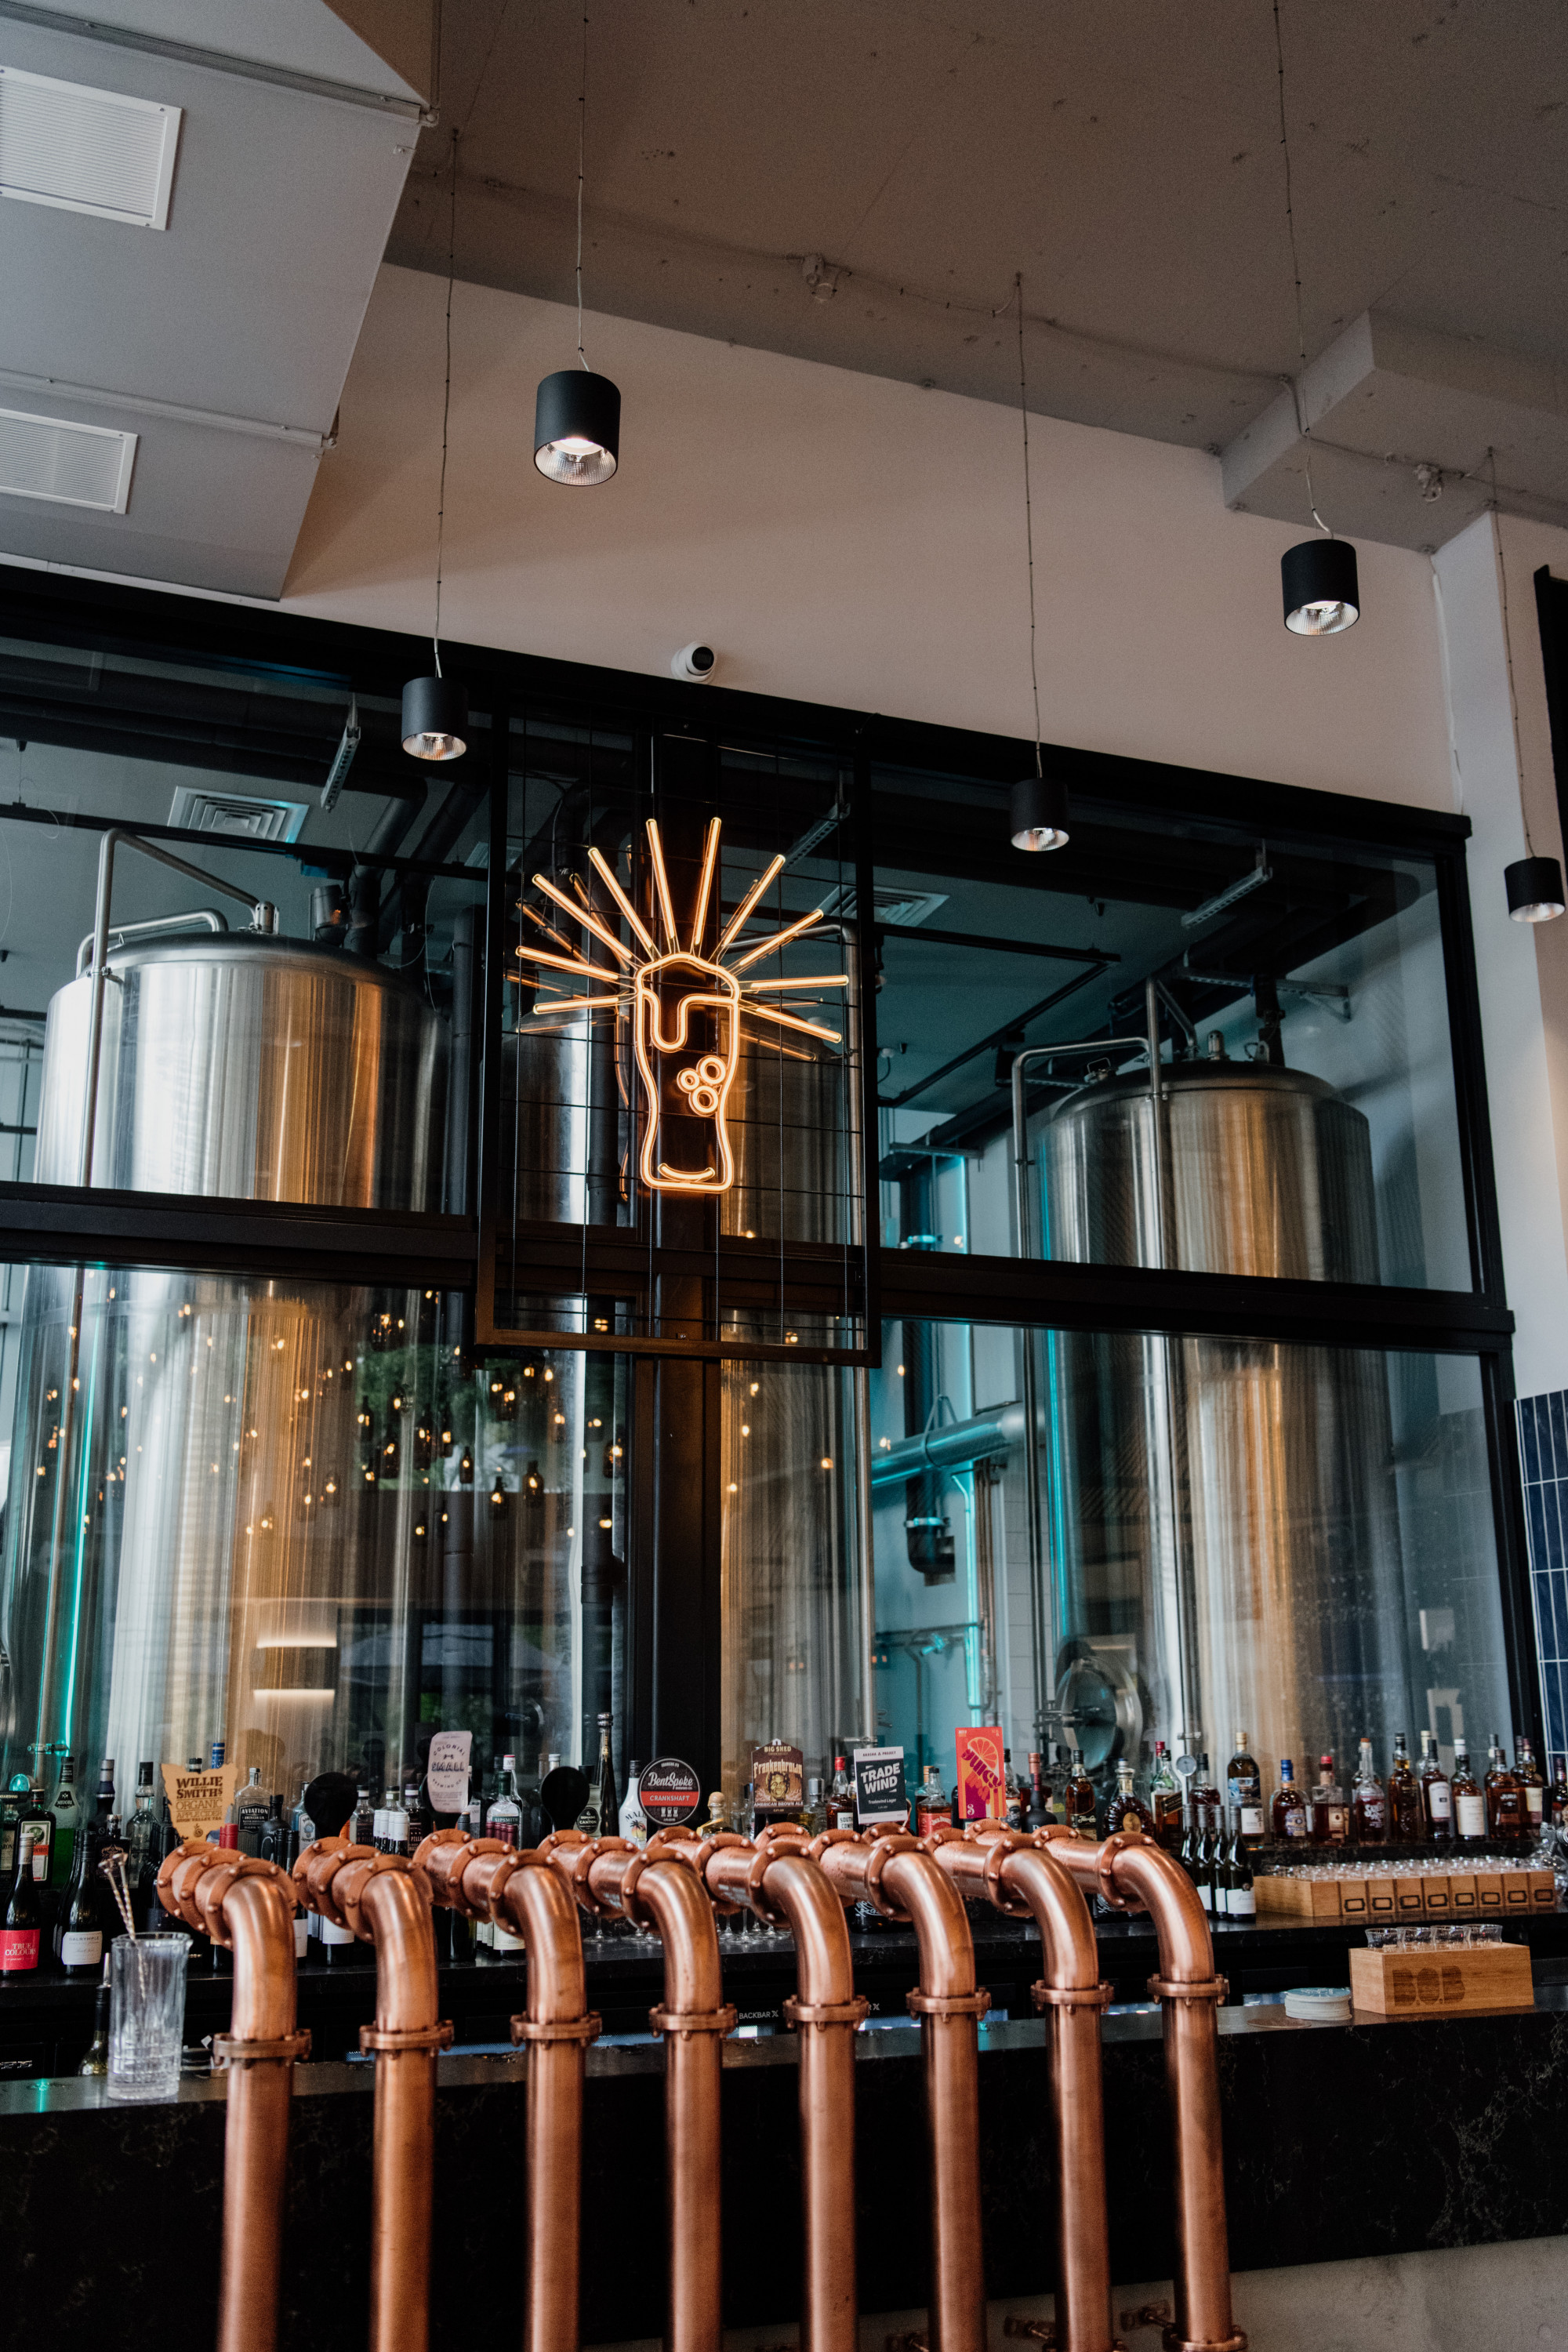 copper beer taps and beer vats in a brewery